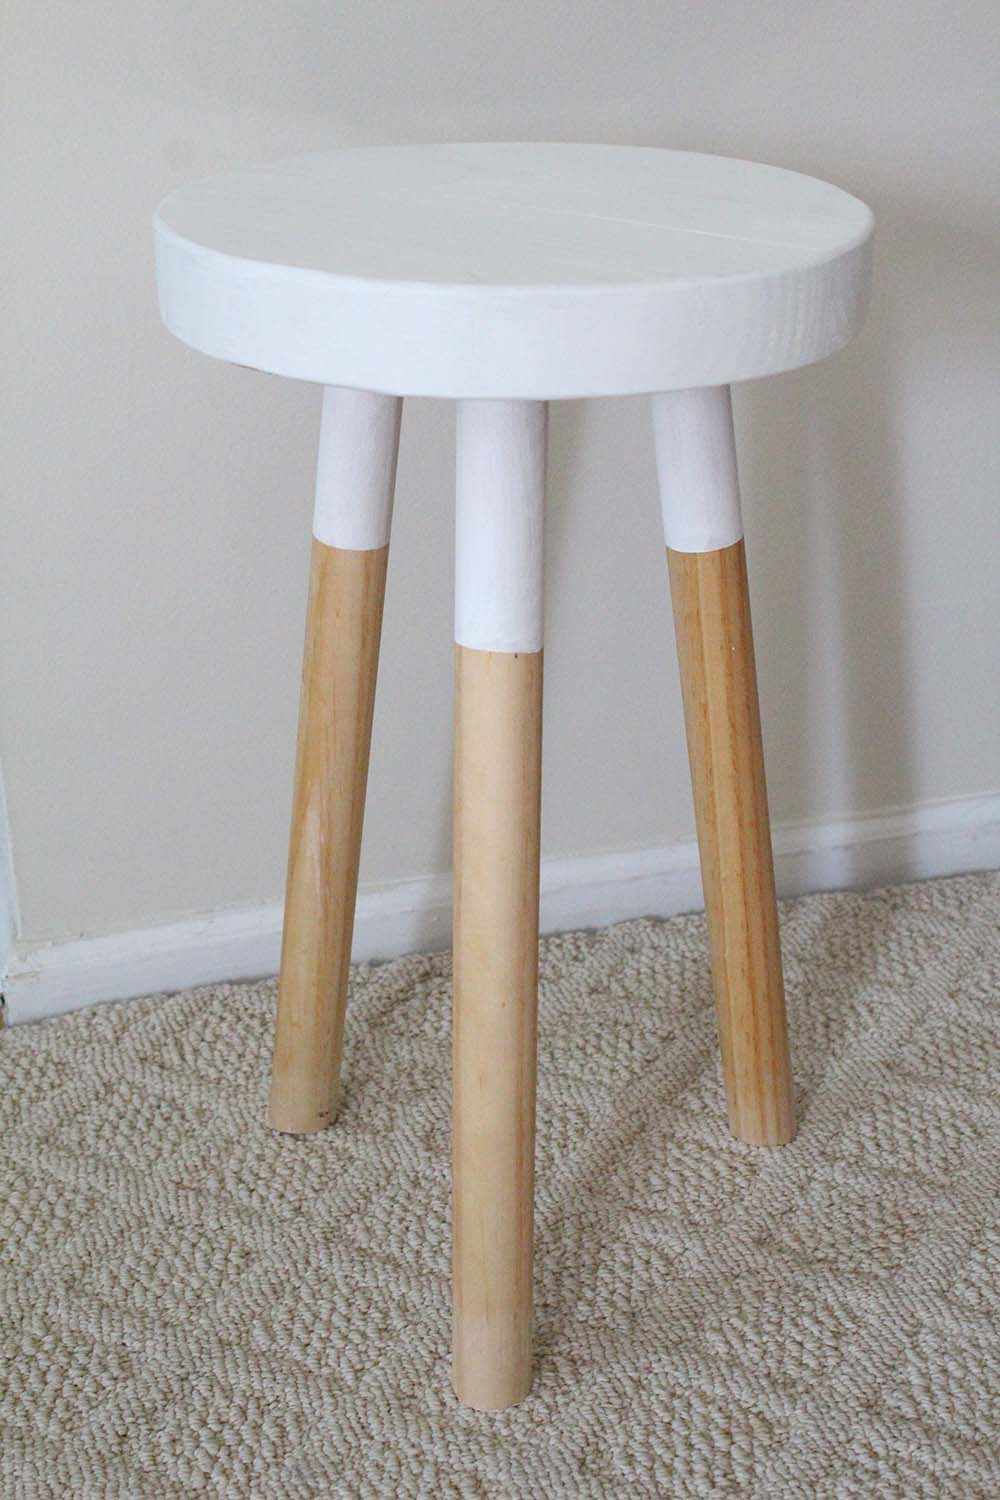 How To Make An Easy Round Stool Simple Diy Furniture Build